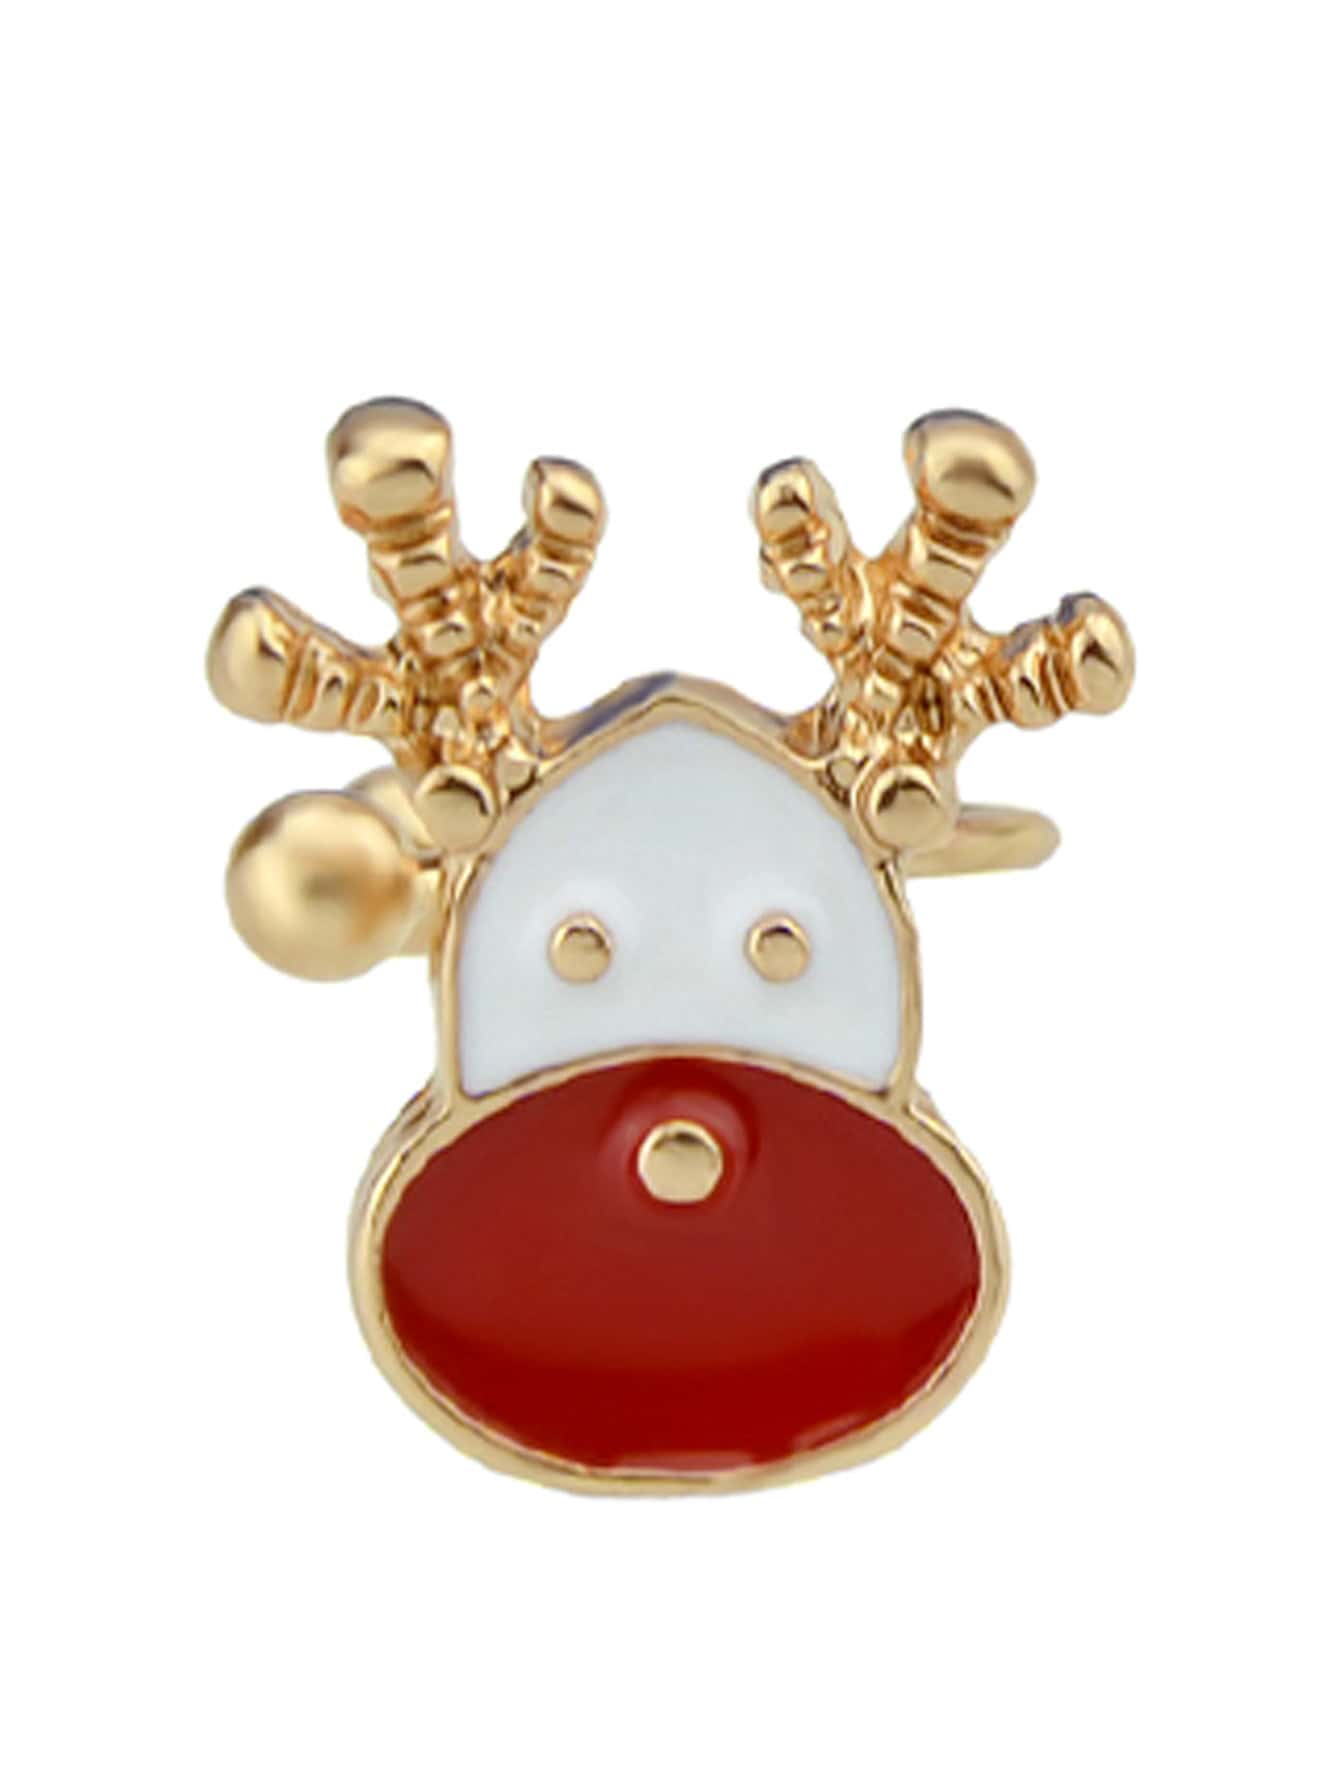 Deer 1Pc Christmas Jewelry Enamel Santa Snowflake Bell Deer Gift Box Snowman Ear Cuff Cartilage Clip Earrings